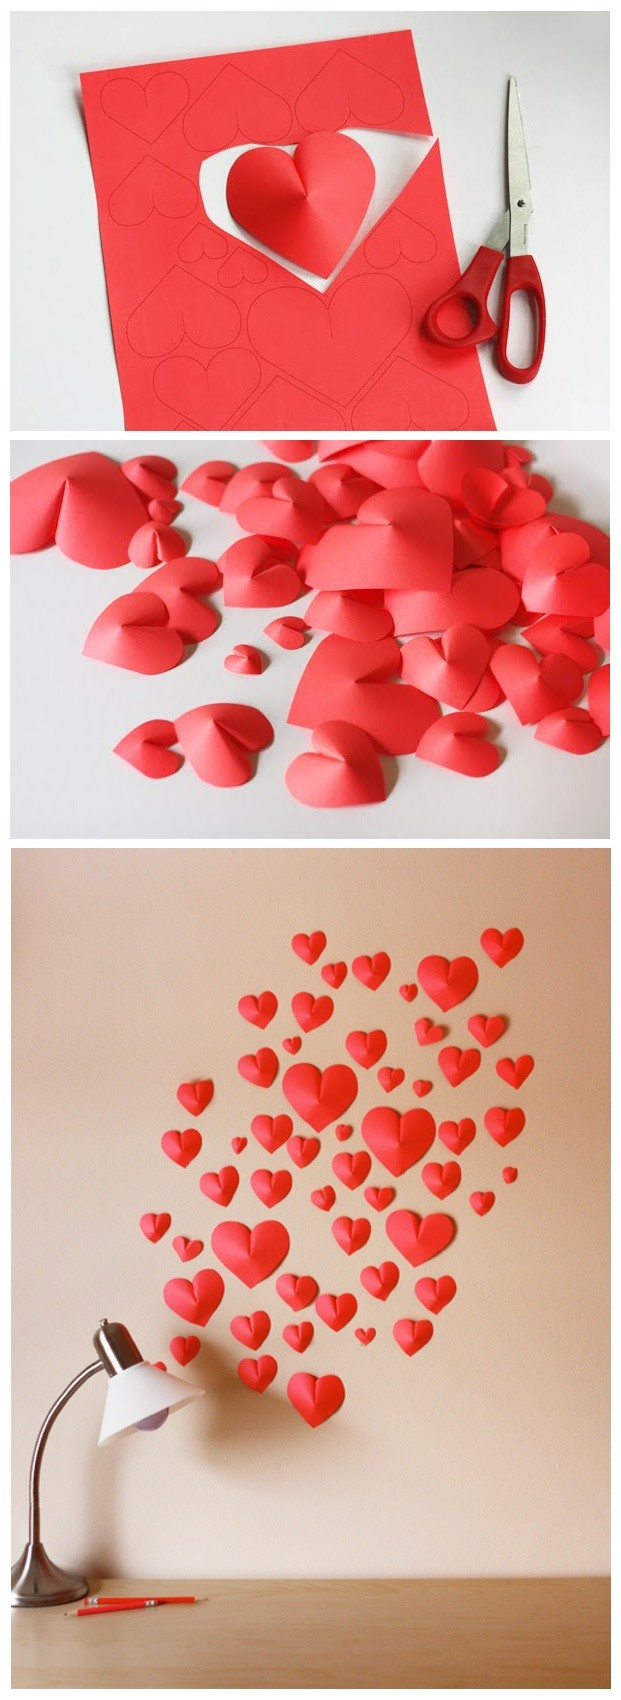 Find Inspiration With Valentines  Wall Art And Gift Ideas-homesthetics.net (92)